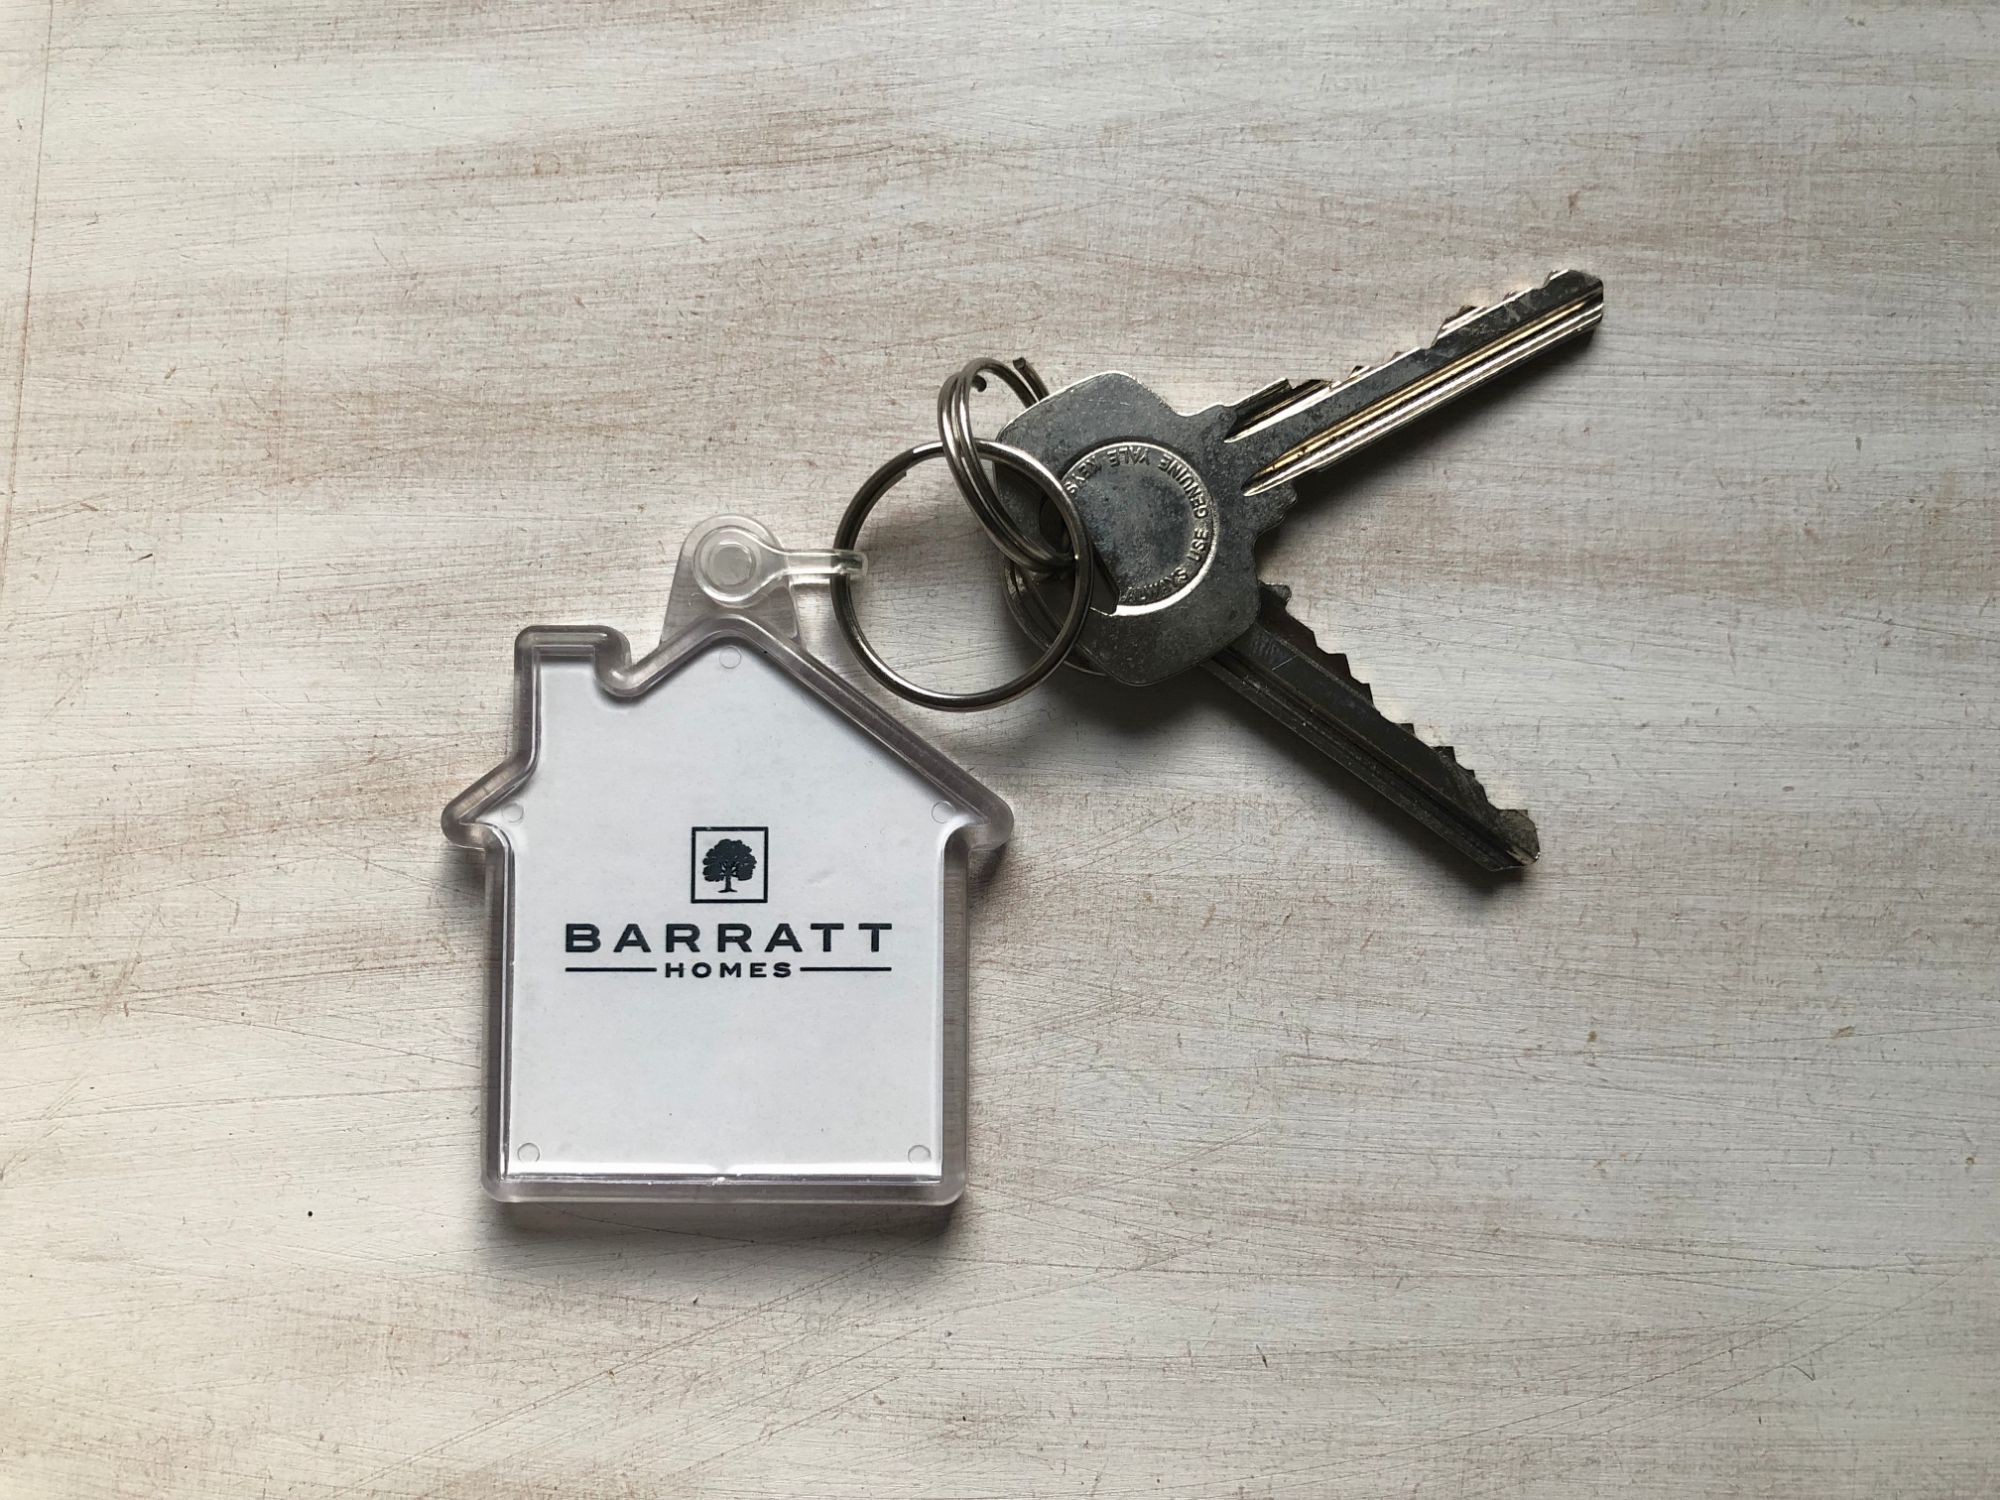 Free stock images money bloggers blog photos house keys